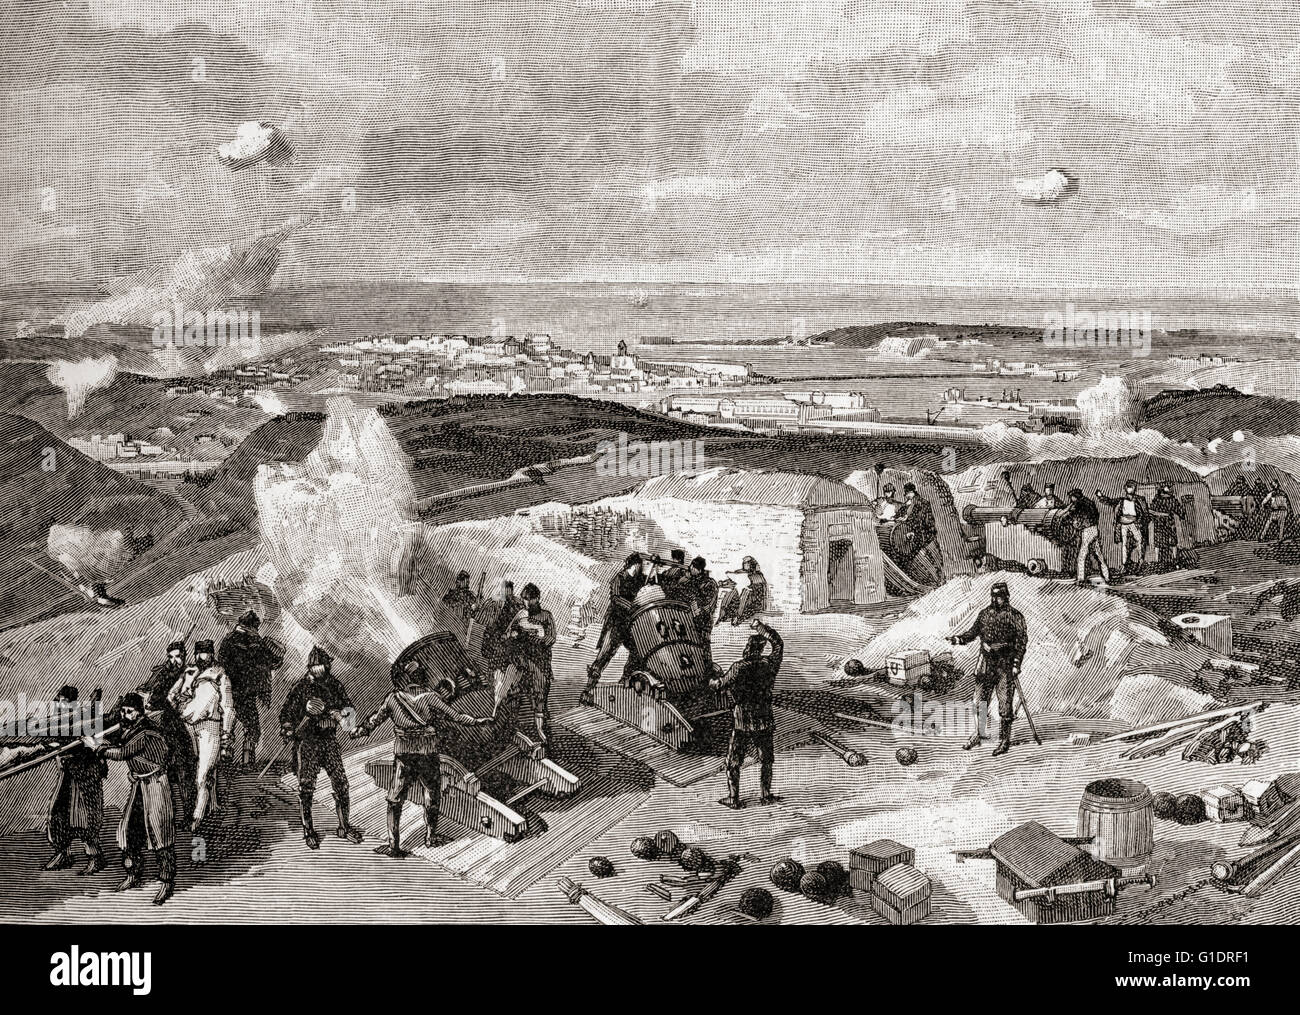 Crimean War, 1853 - 1856.  French troops bombarding the Russian line at the siege of Sebastopol . - Stock Image